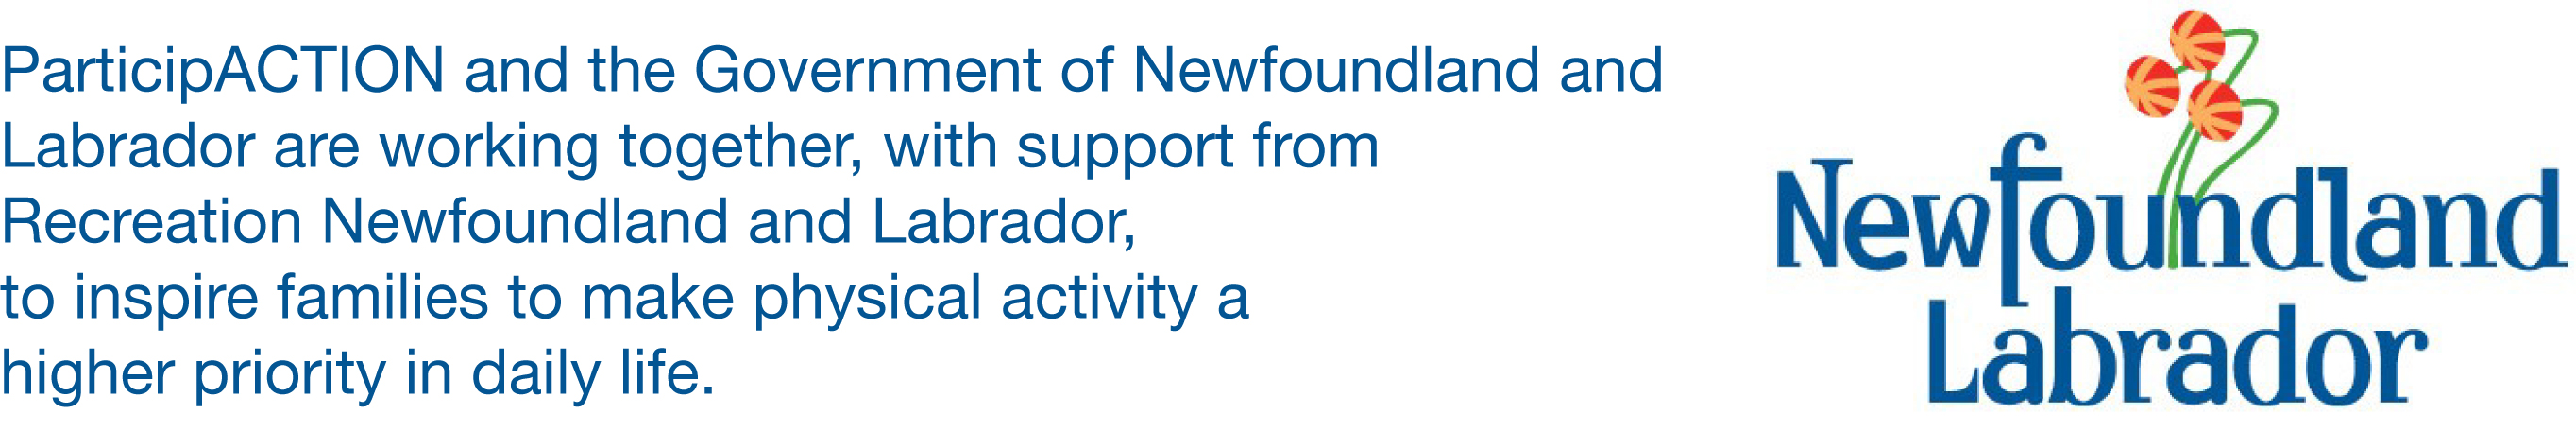 ParticipACTION and the Government of Newfoundland and Labrador are working together, with support from Recreation NL, to inspire families to make physical activity a higher priority in daily life.